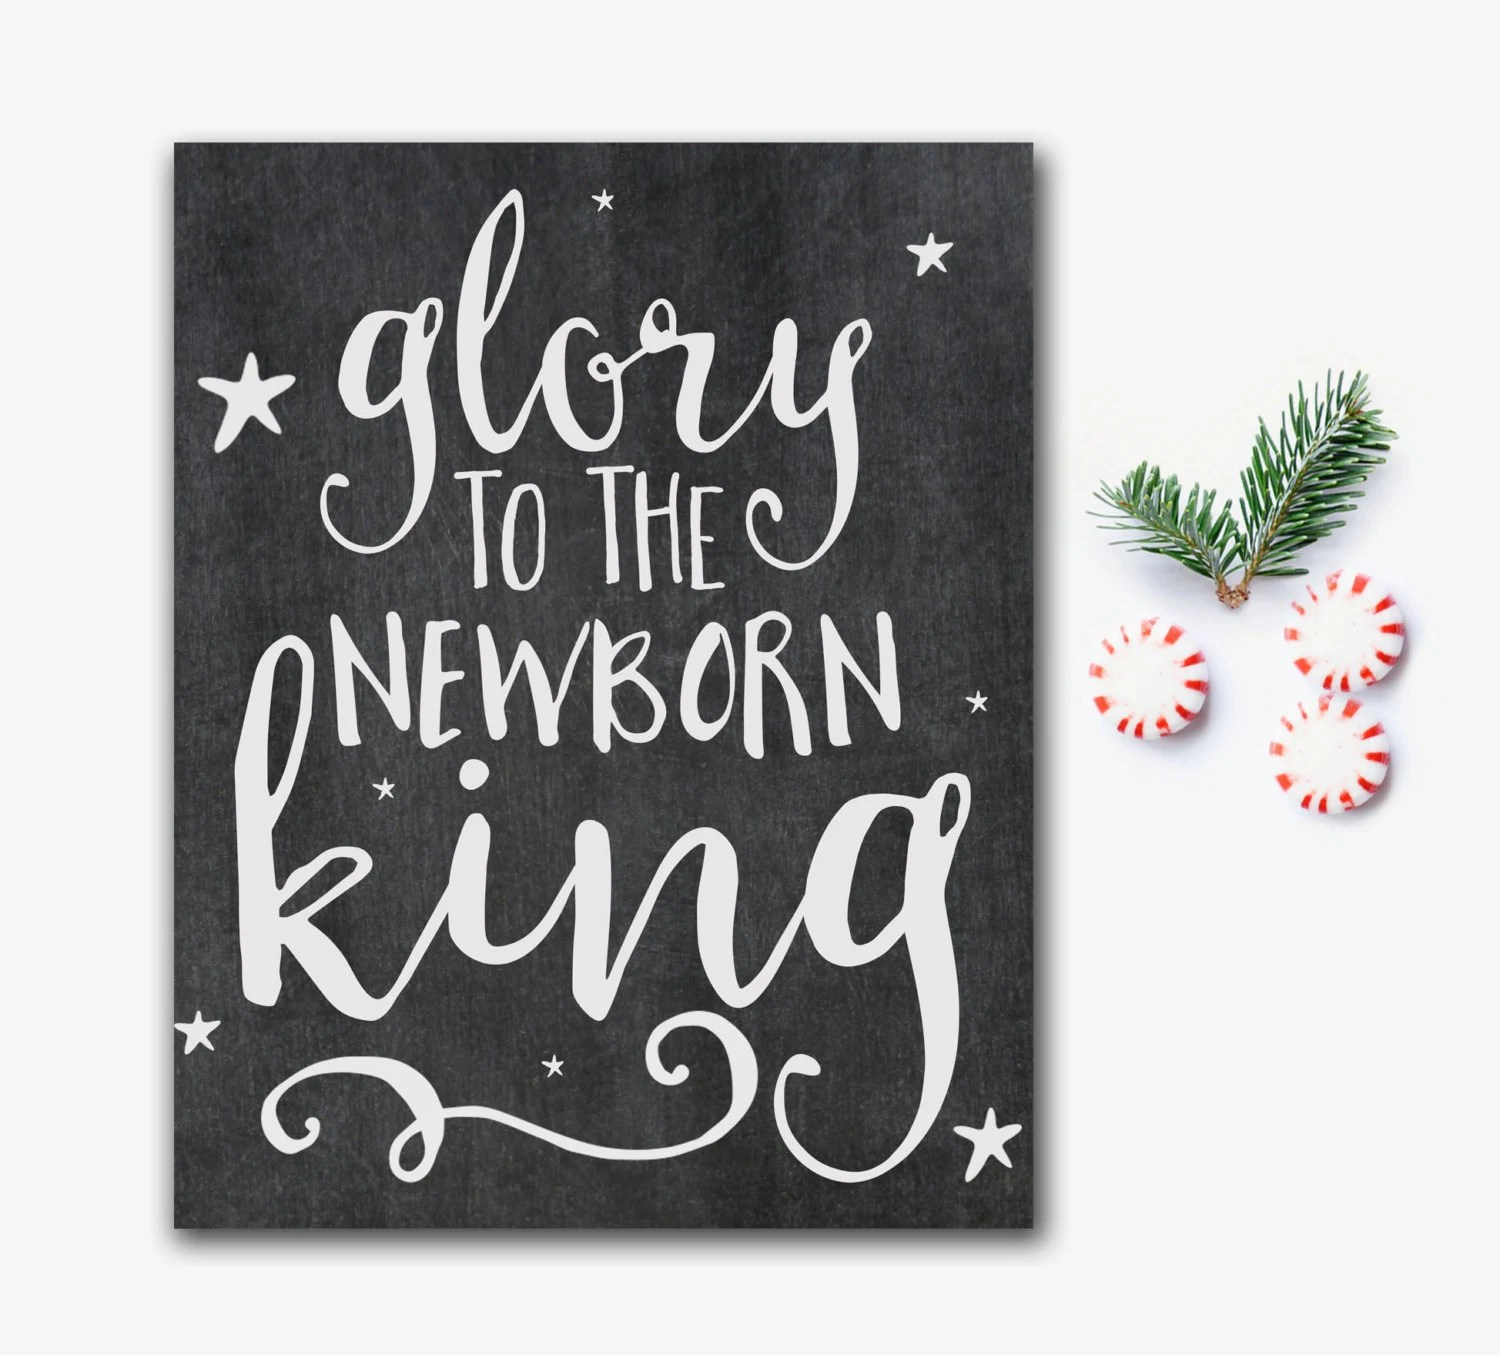 Christian Christmas Printable Glory To The Newborn King